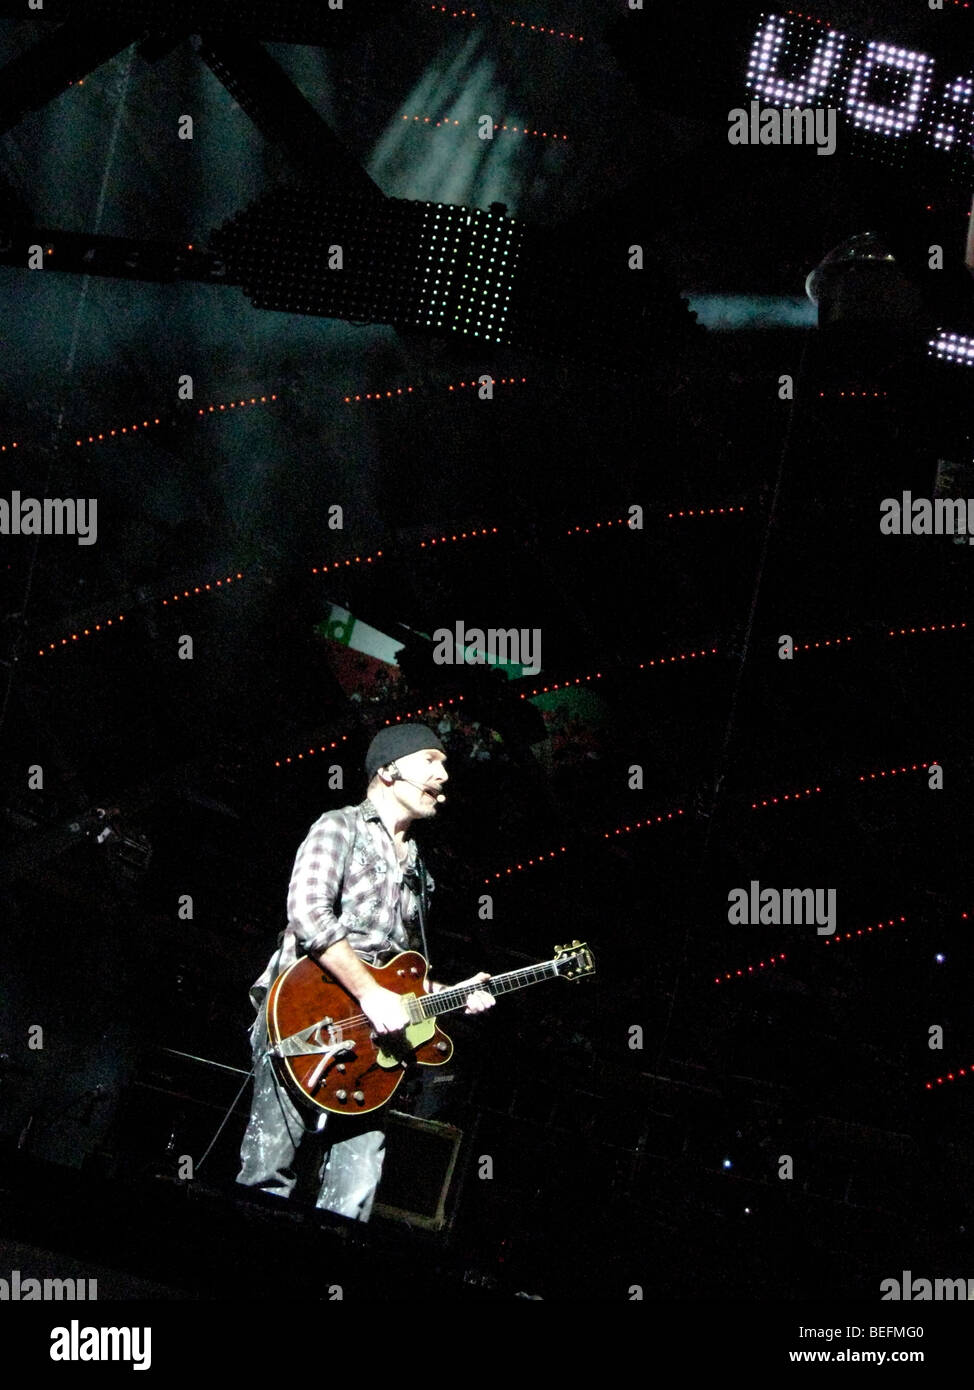 The Edge, guitarist of the Irish rock band U2, performs live at FedEx Field during U2's 360 Tour. - Stock Image